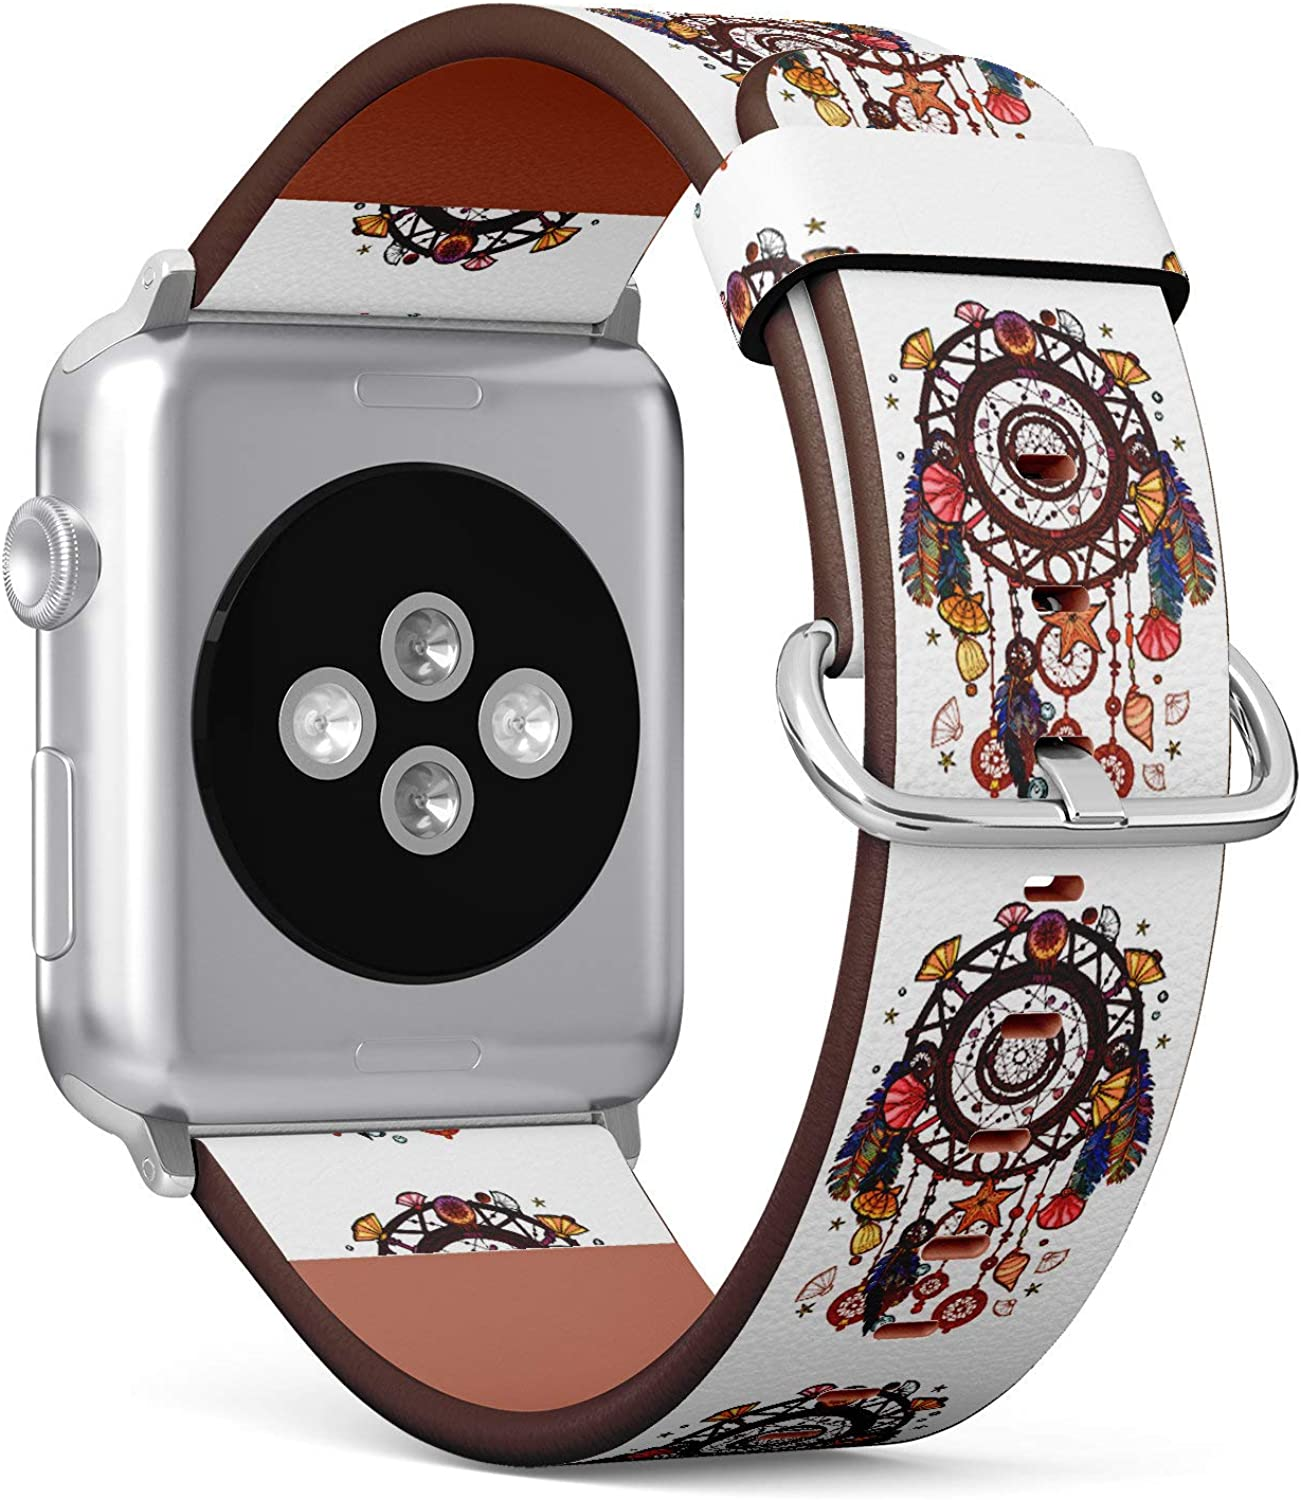 (Tribal Dream Catcher) Patterned Leather Wristband Strap for Apple Watch Series 4/3/2/1 gen,Replacement for iWatch 42mm / 44mm Bands